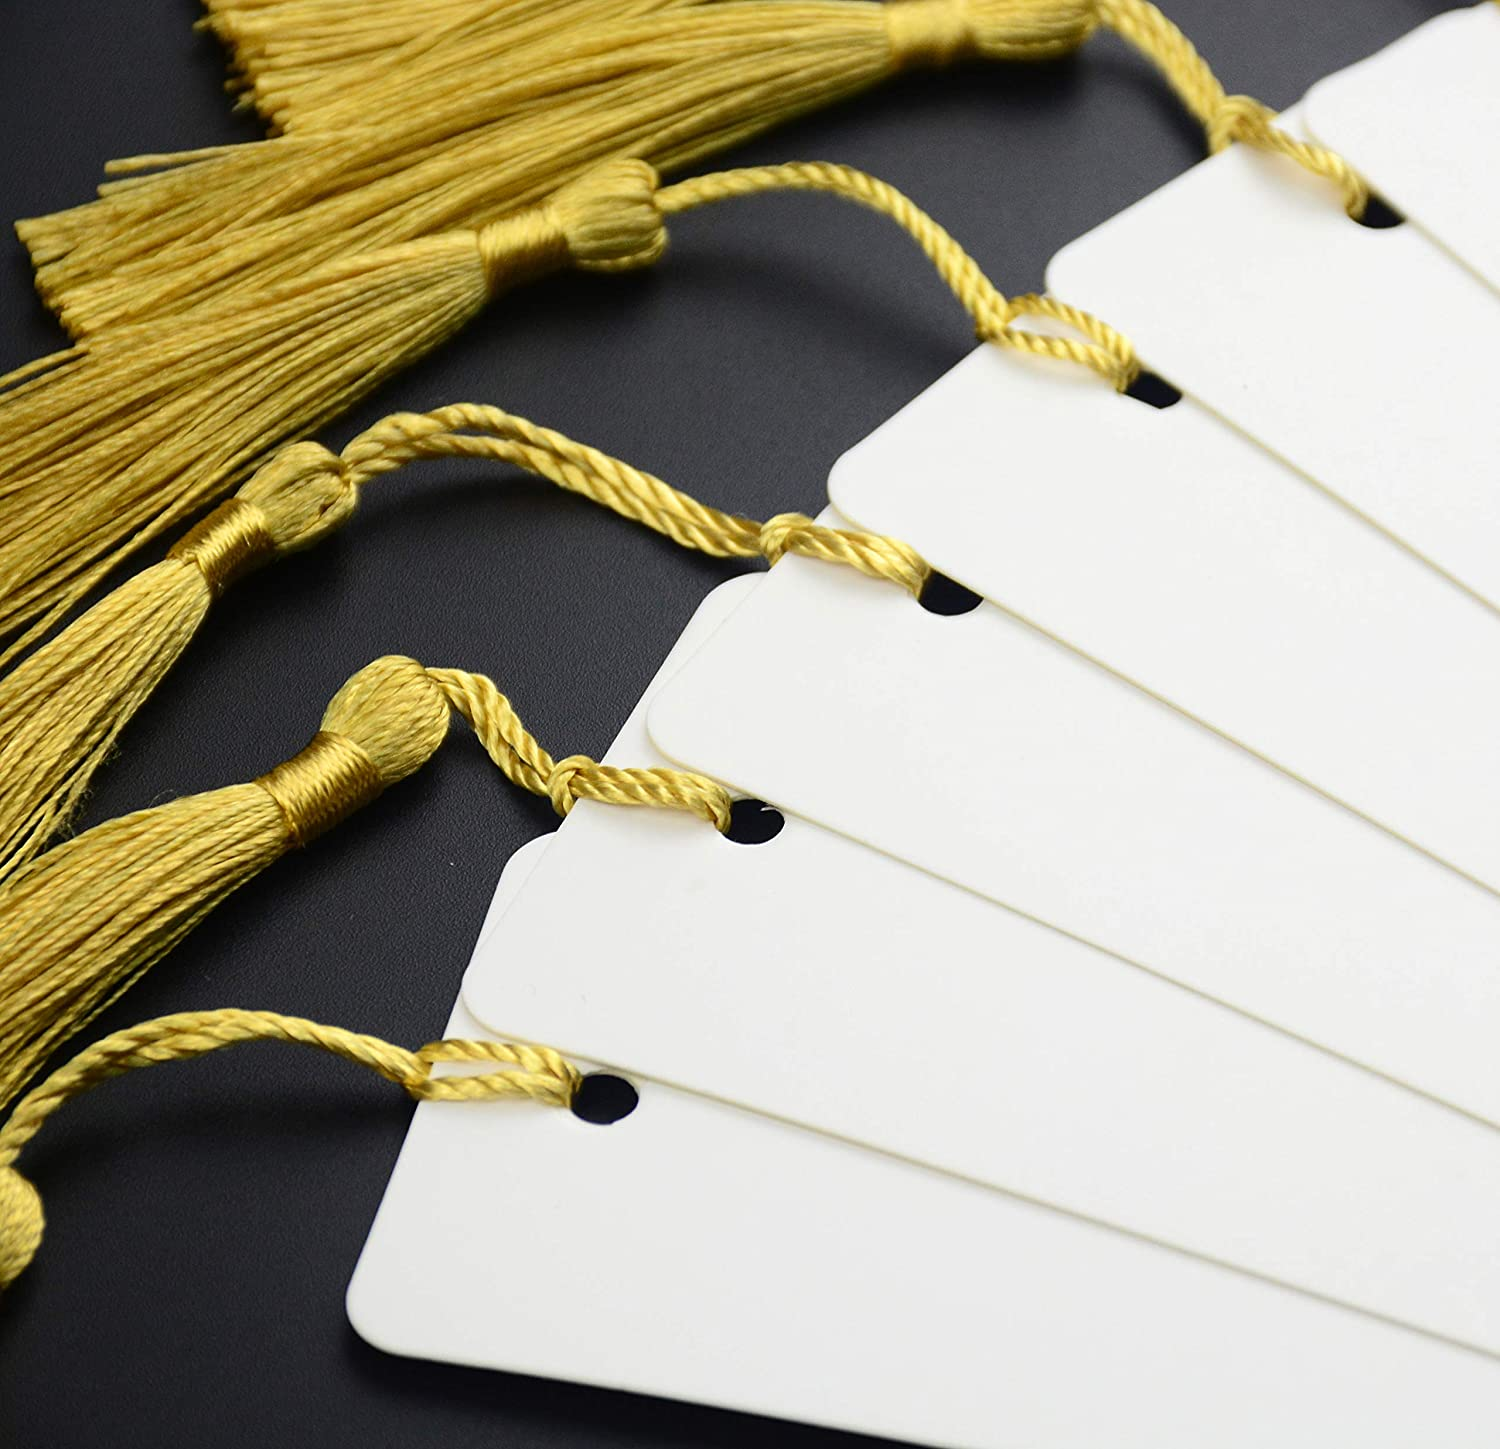 Makhry 100 Pcs Imported Rectangle Kraft Paper Bookmarks Gift Tags Wedding Favor Bonbonniere Favor Thank You Gift Tags with 100 pcs Tassels White/&Dark Green